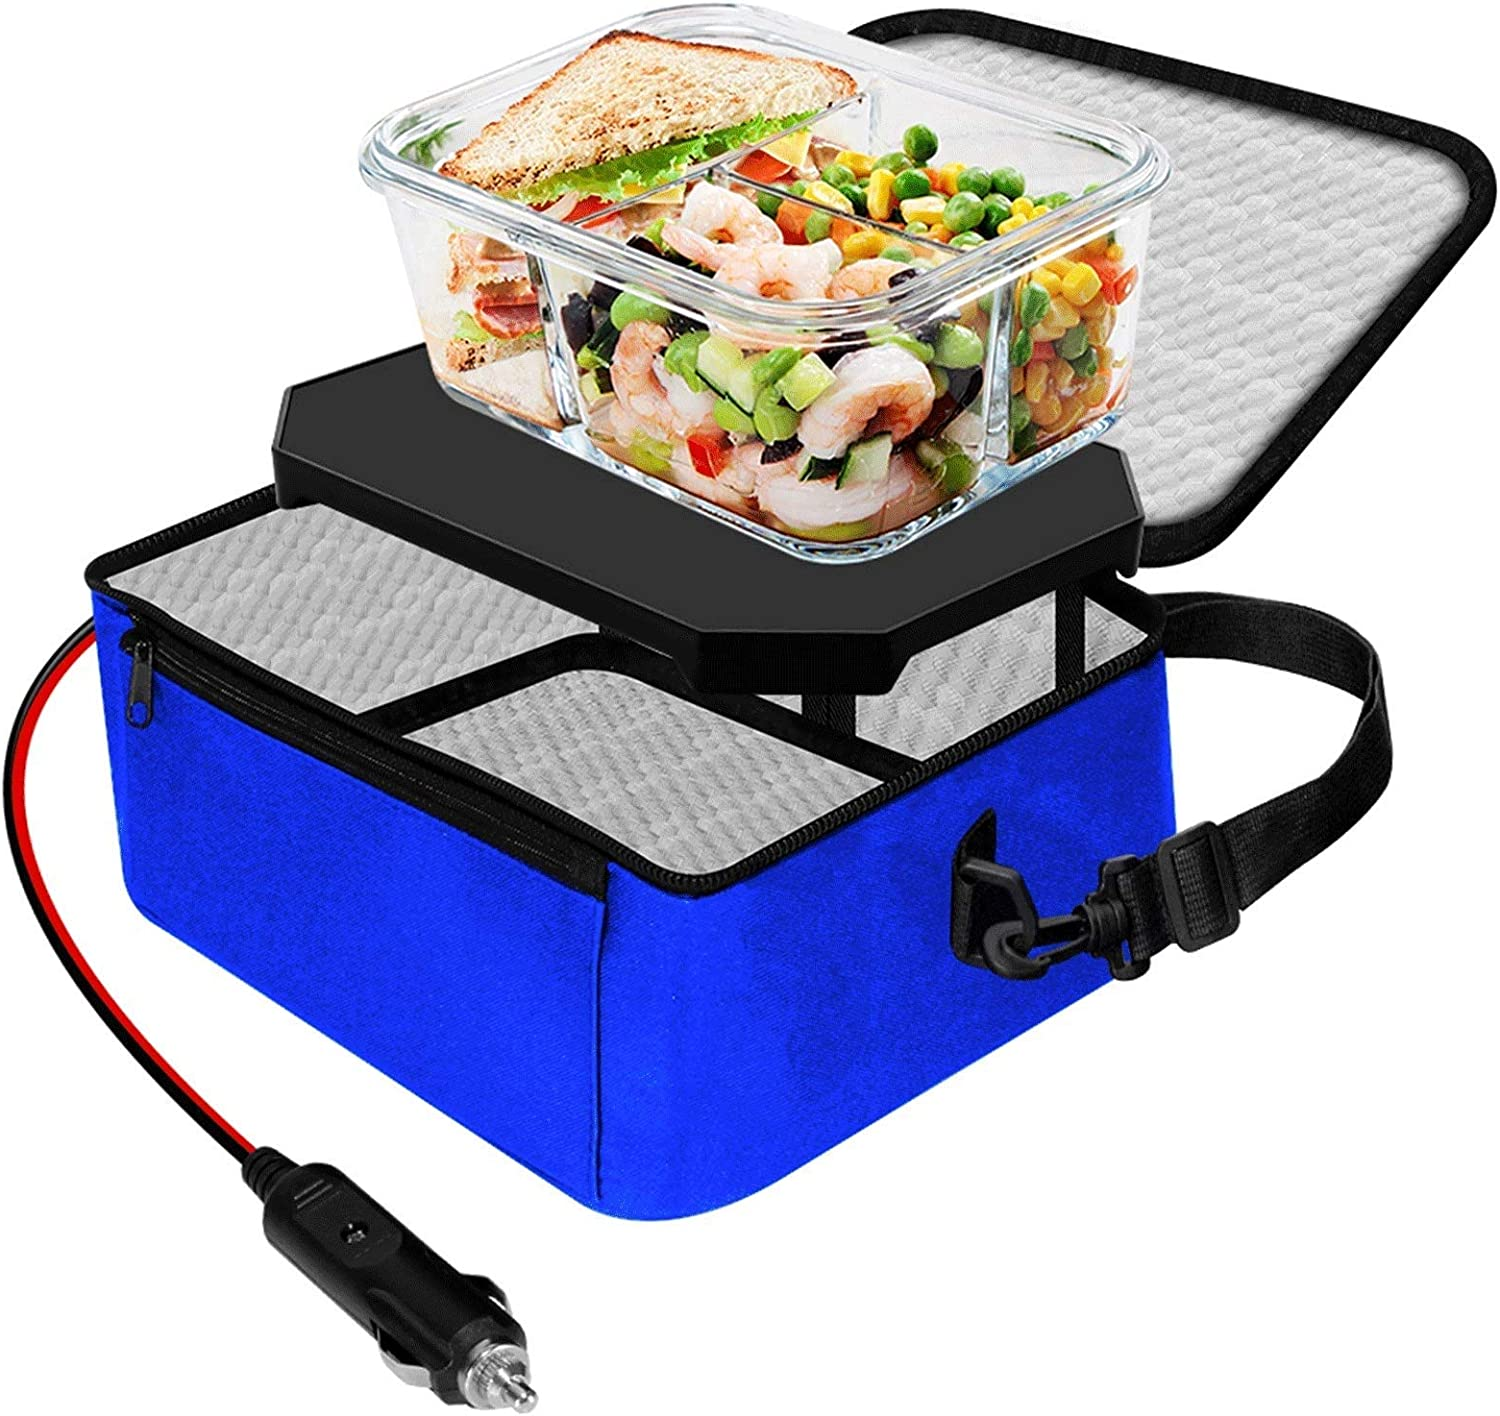 TrianglePatt Personal Portable Oven, 24V Food Warmer Portable Mini Microwave for heated Meals, Upgraded Lunch Warmer Box with Bag for Truck, Crane, and Potlucks